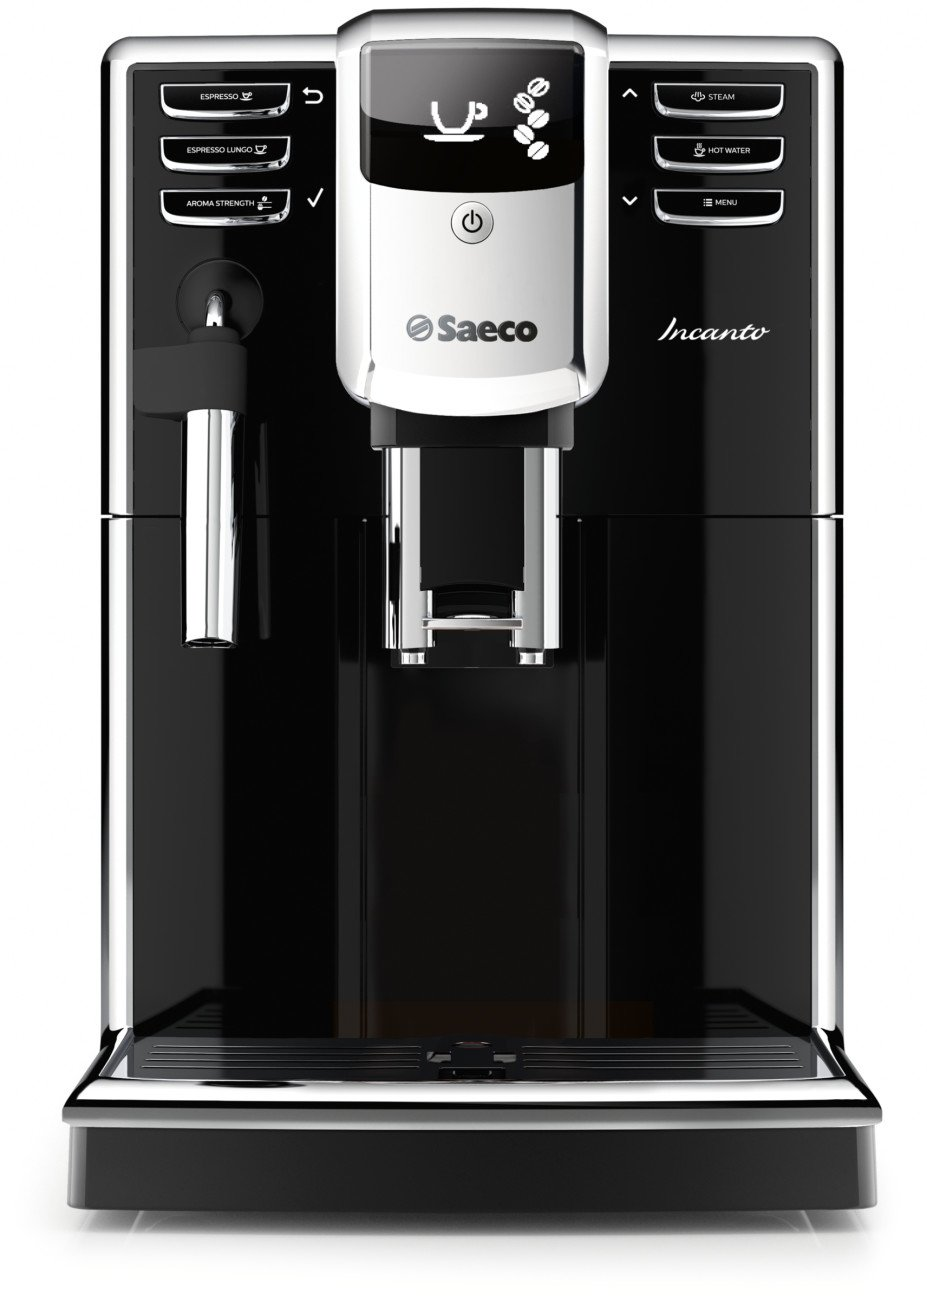 Saeco HD8911/48 Incanto Classic Milk Frother Super Automatic Espresso Machine with Aquaclean Filter, Black by Saeco